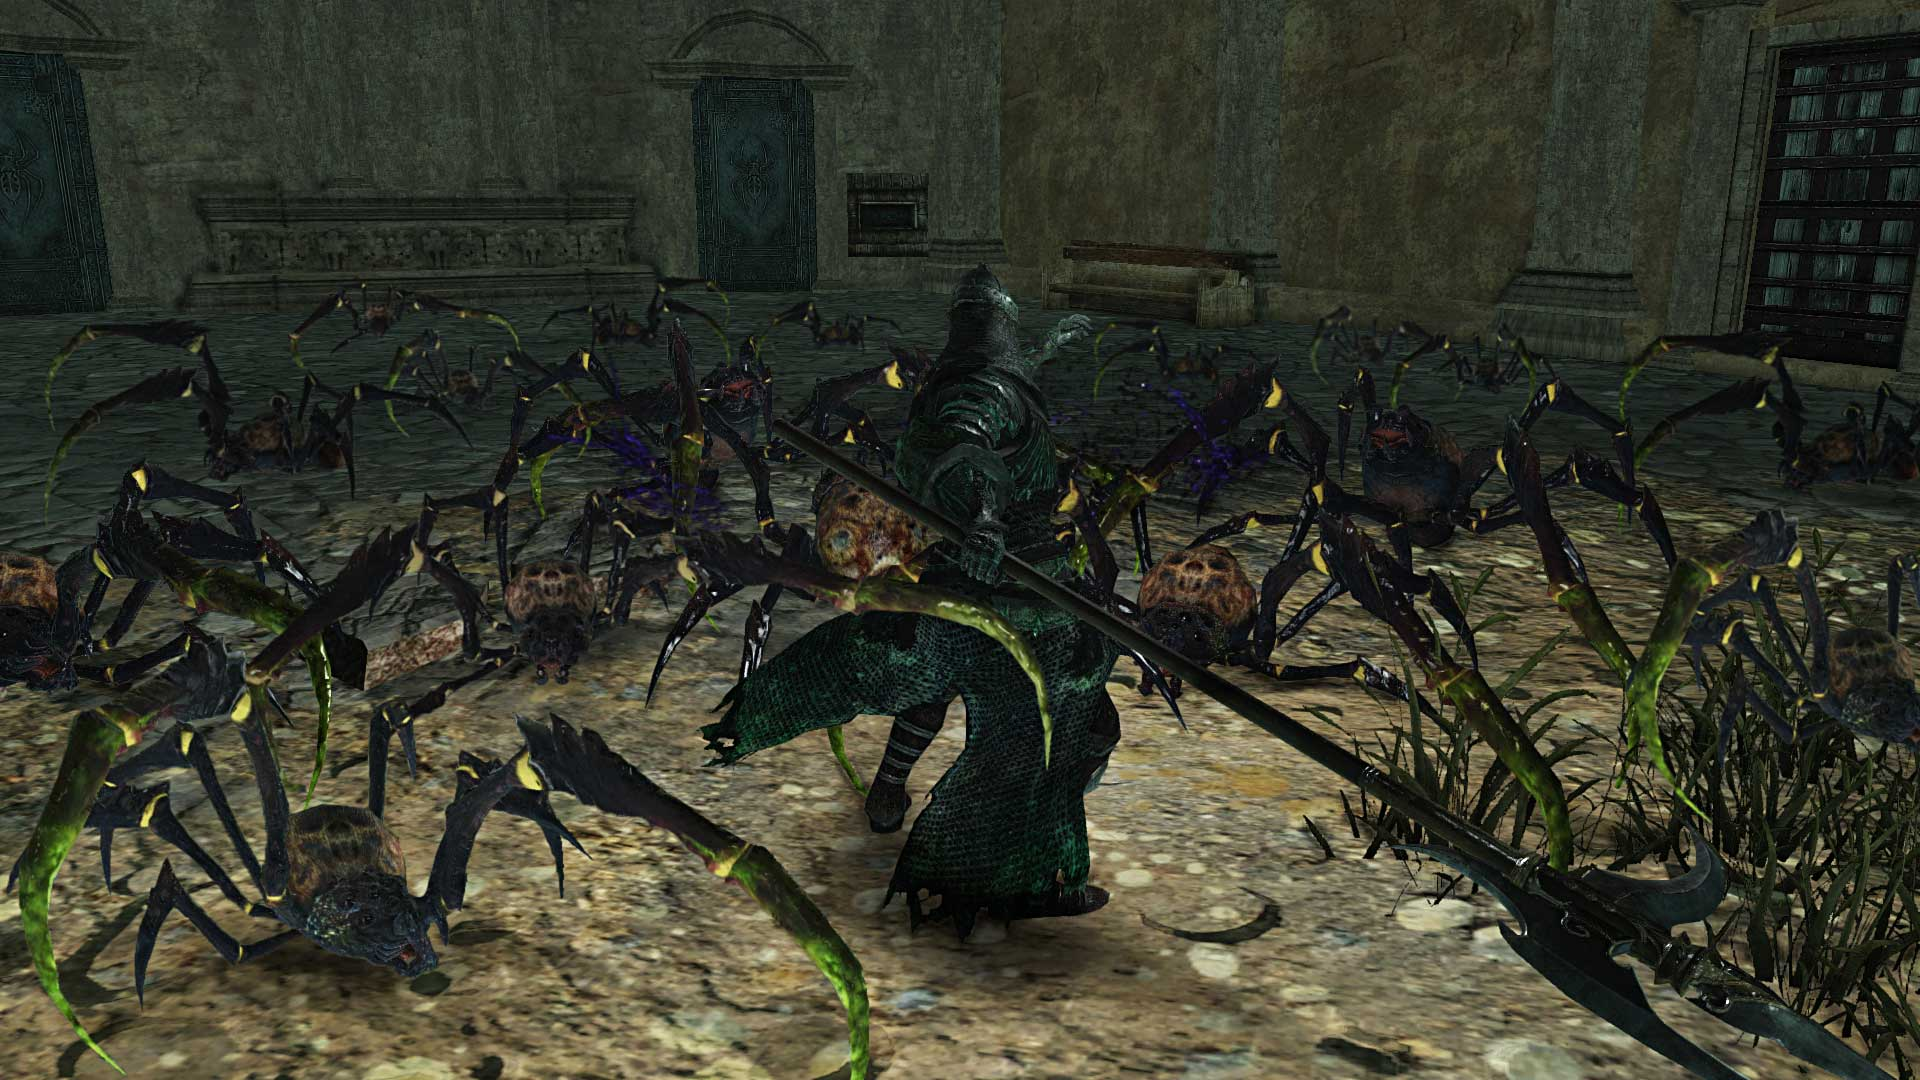 Dark Souls 2 Beta Prepare To Preview: Dark Souls 2 Is Coming To PS4 And Xbox One Next Year